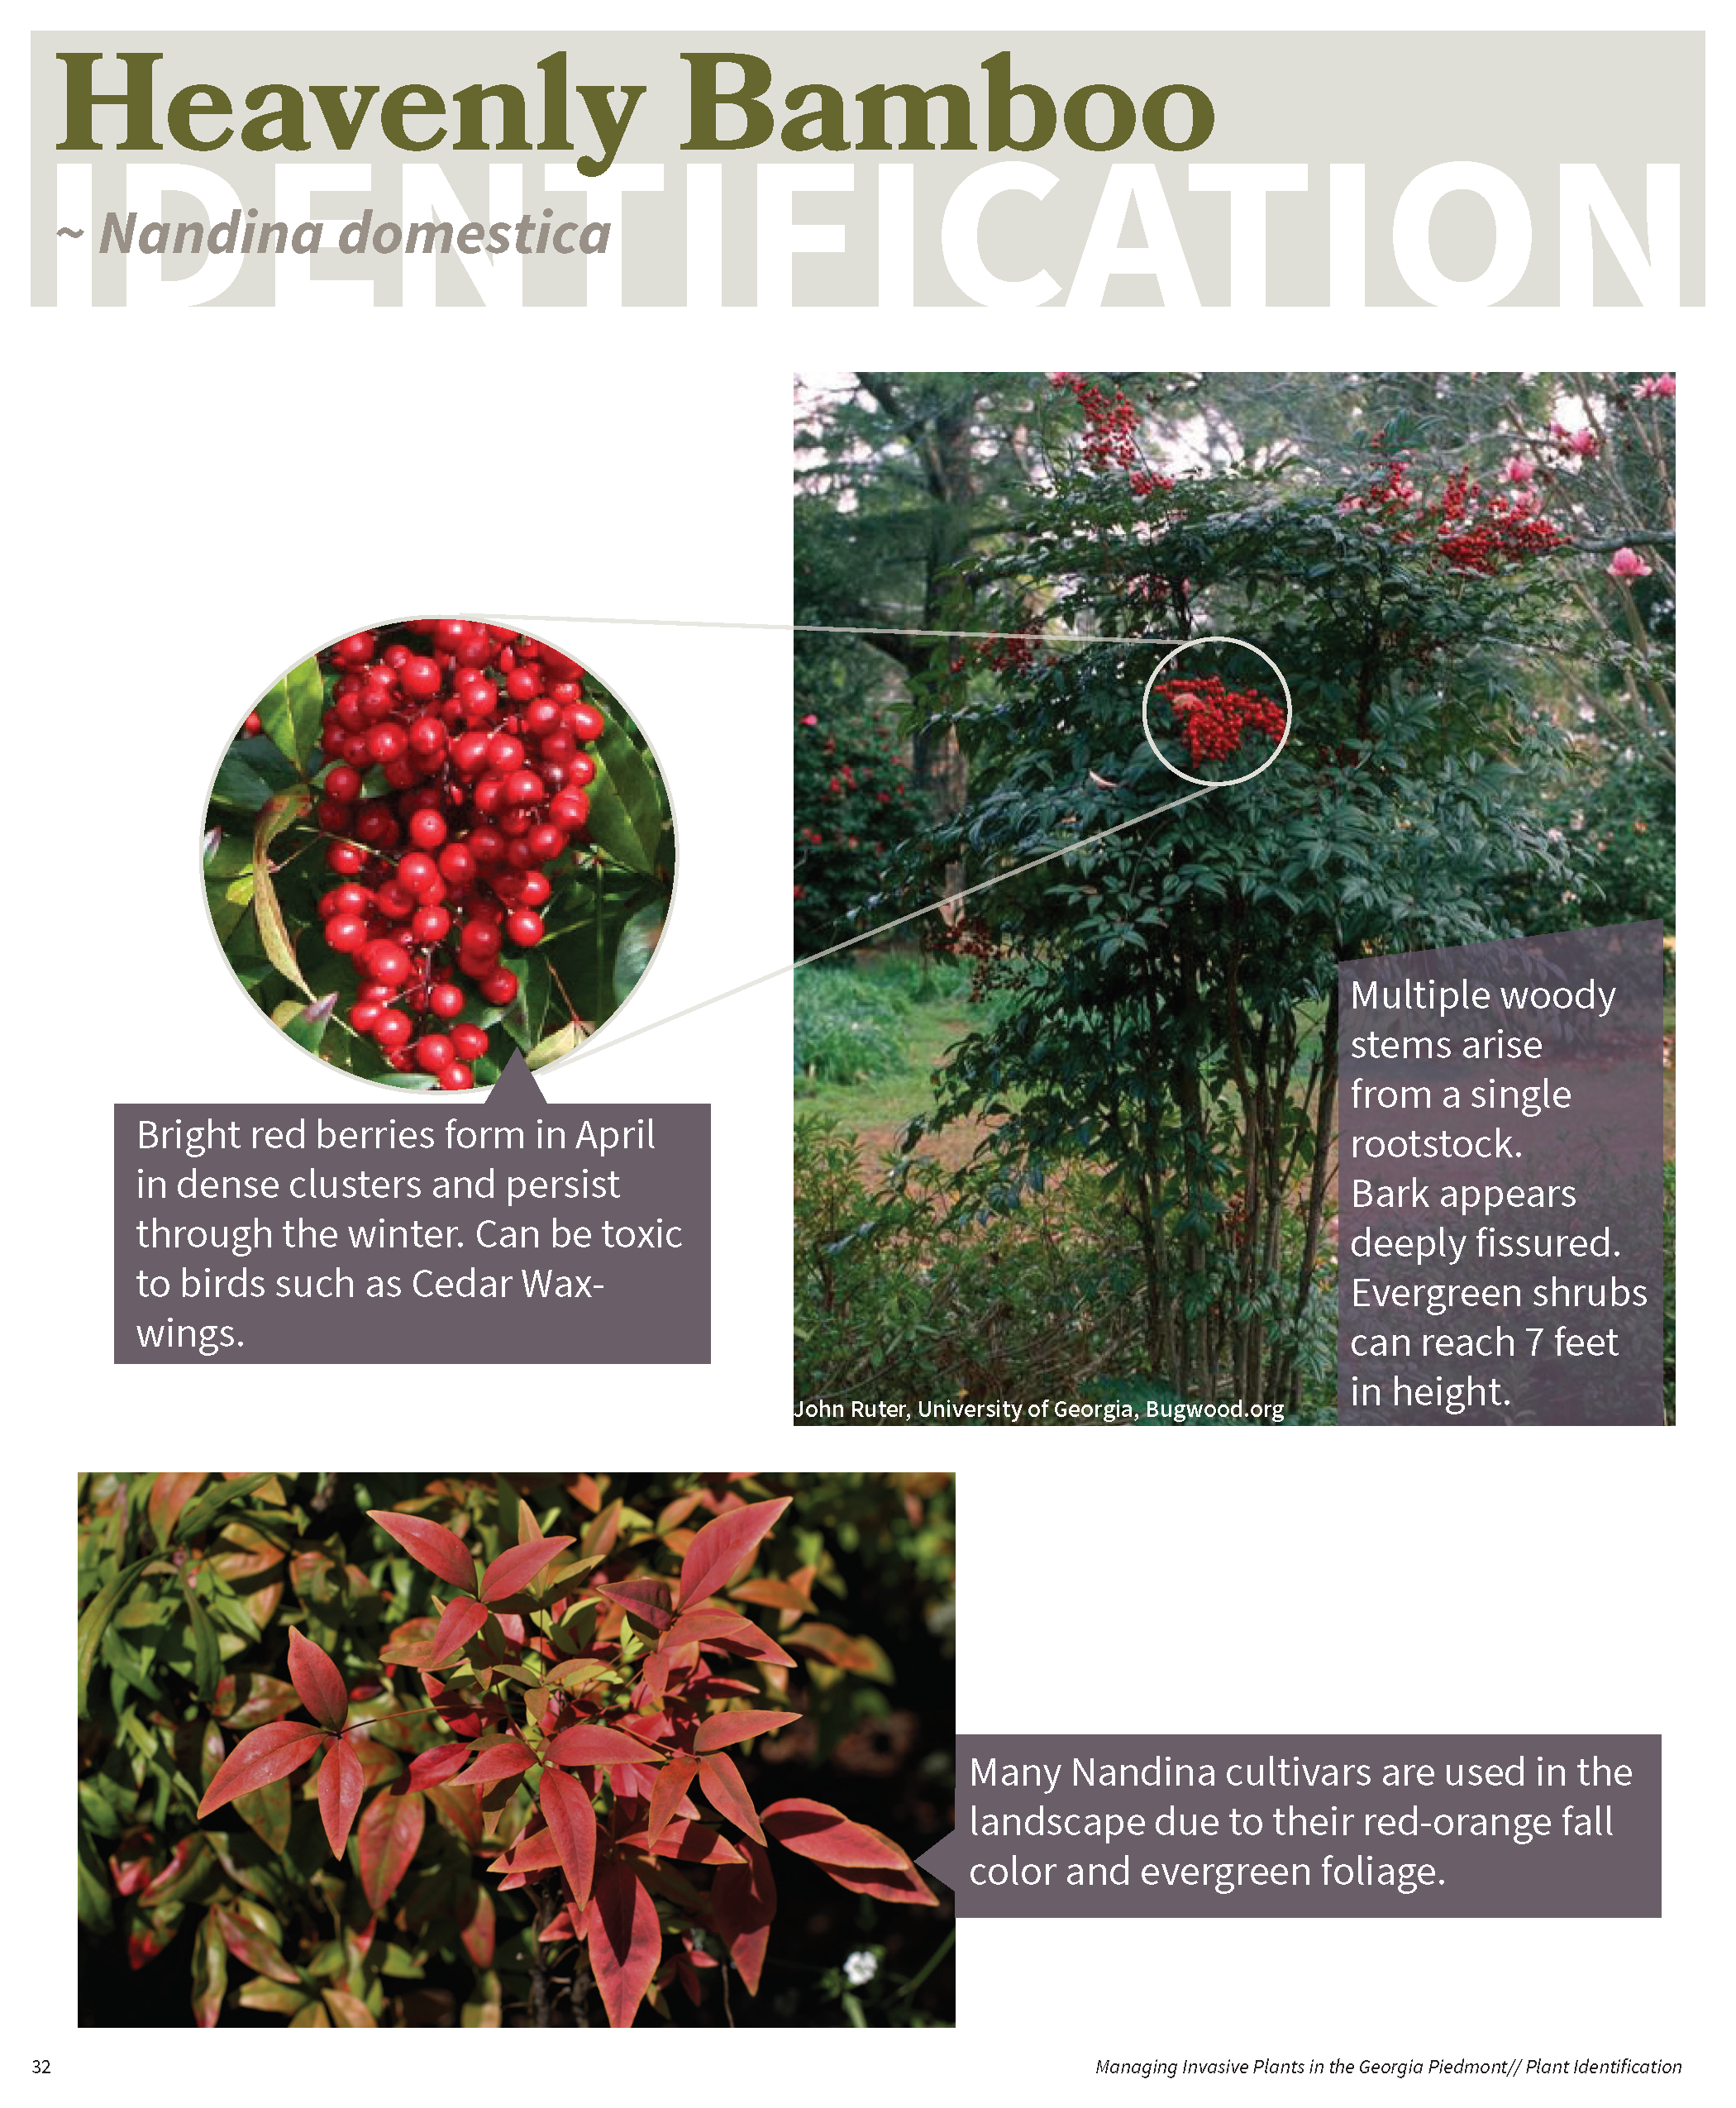 Managing Invasive Plants in the GA Piedmont for web_Page_31